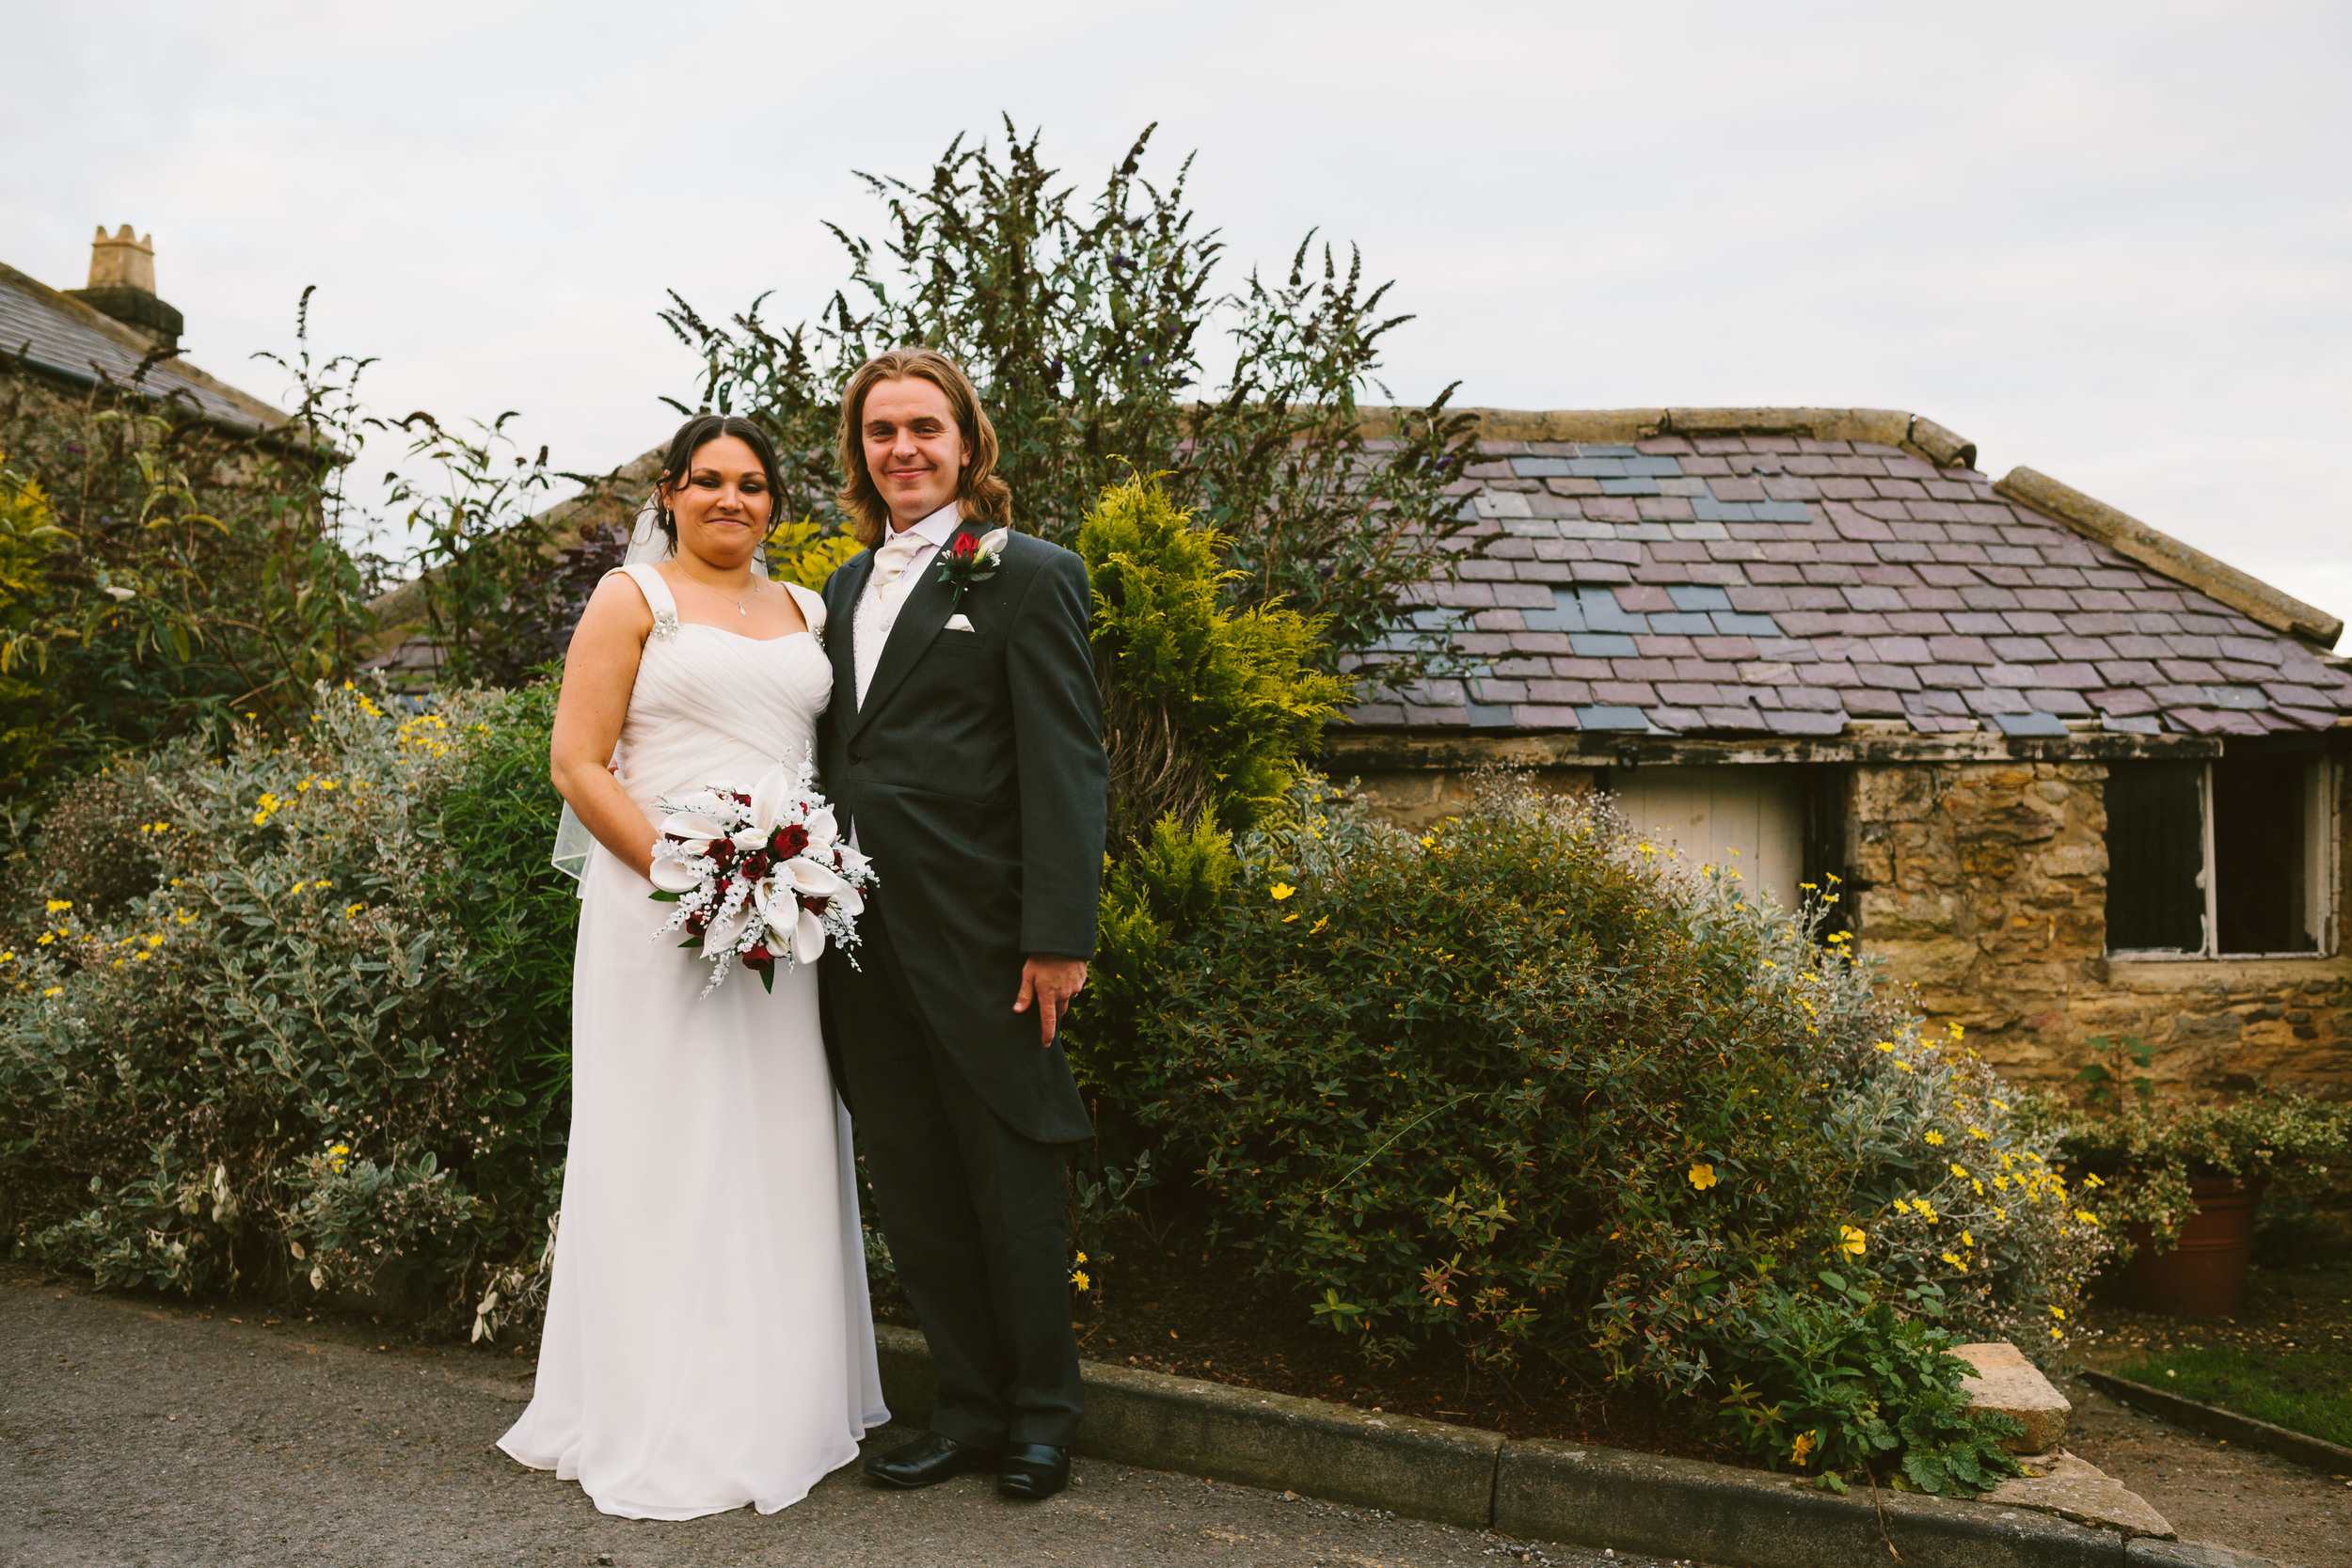 Durham Wedding Venue - South Causey Inn